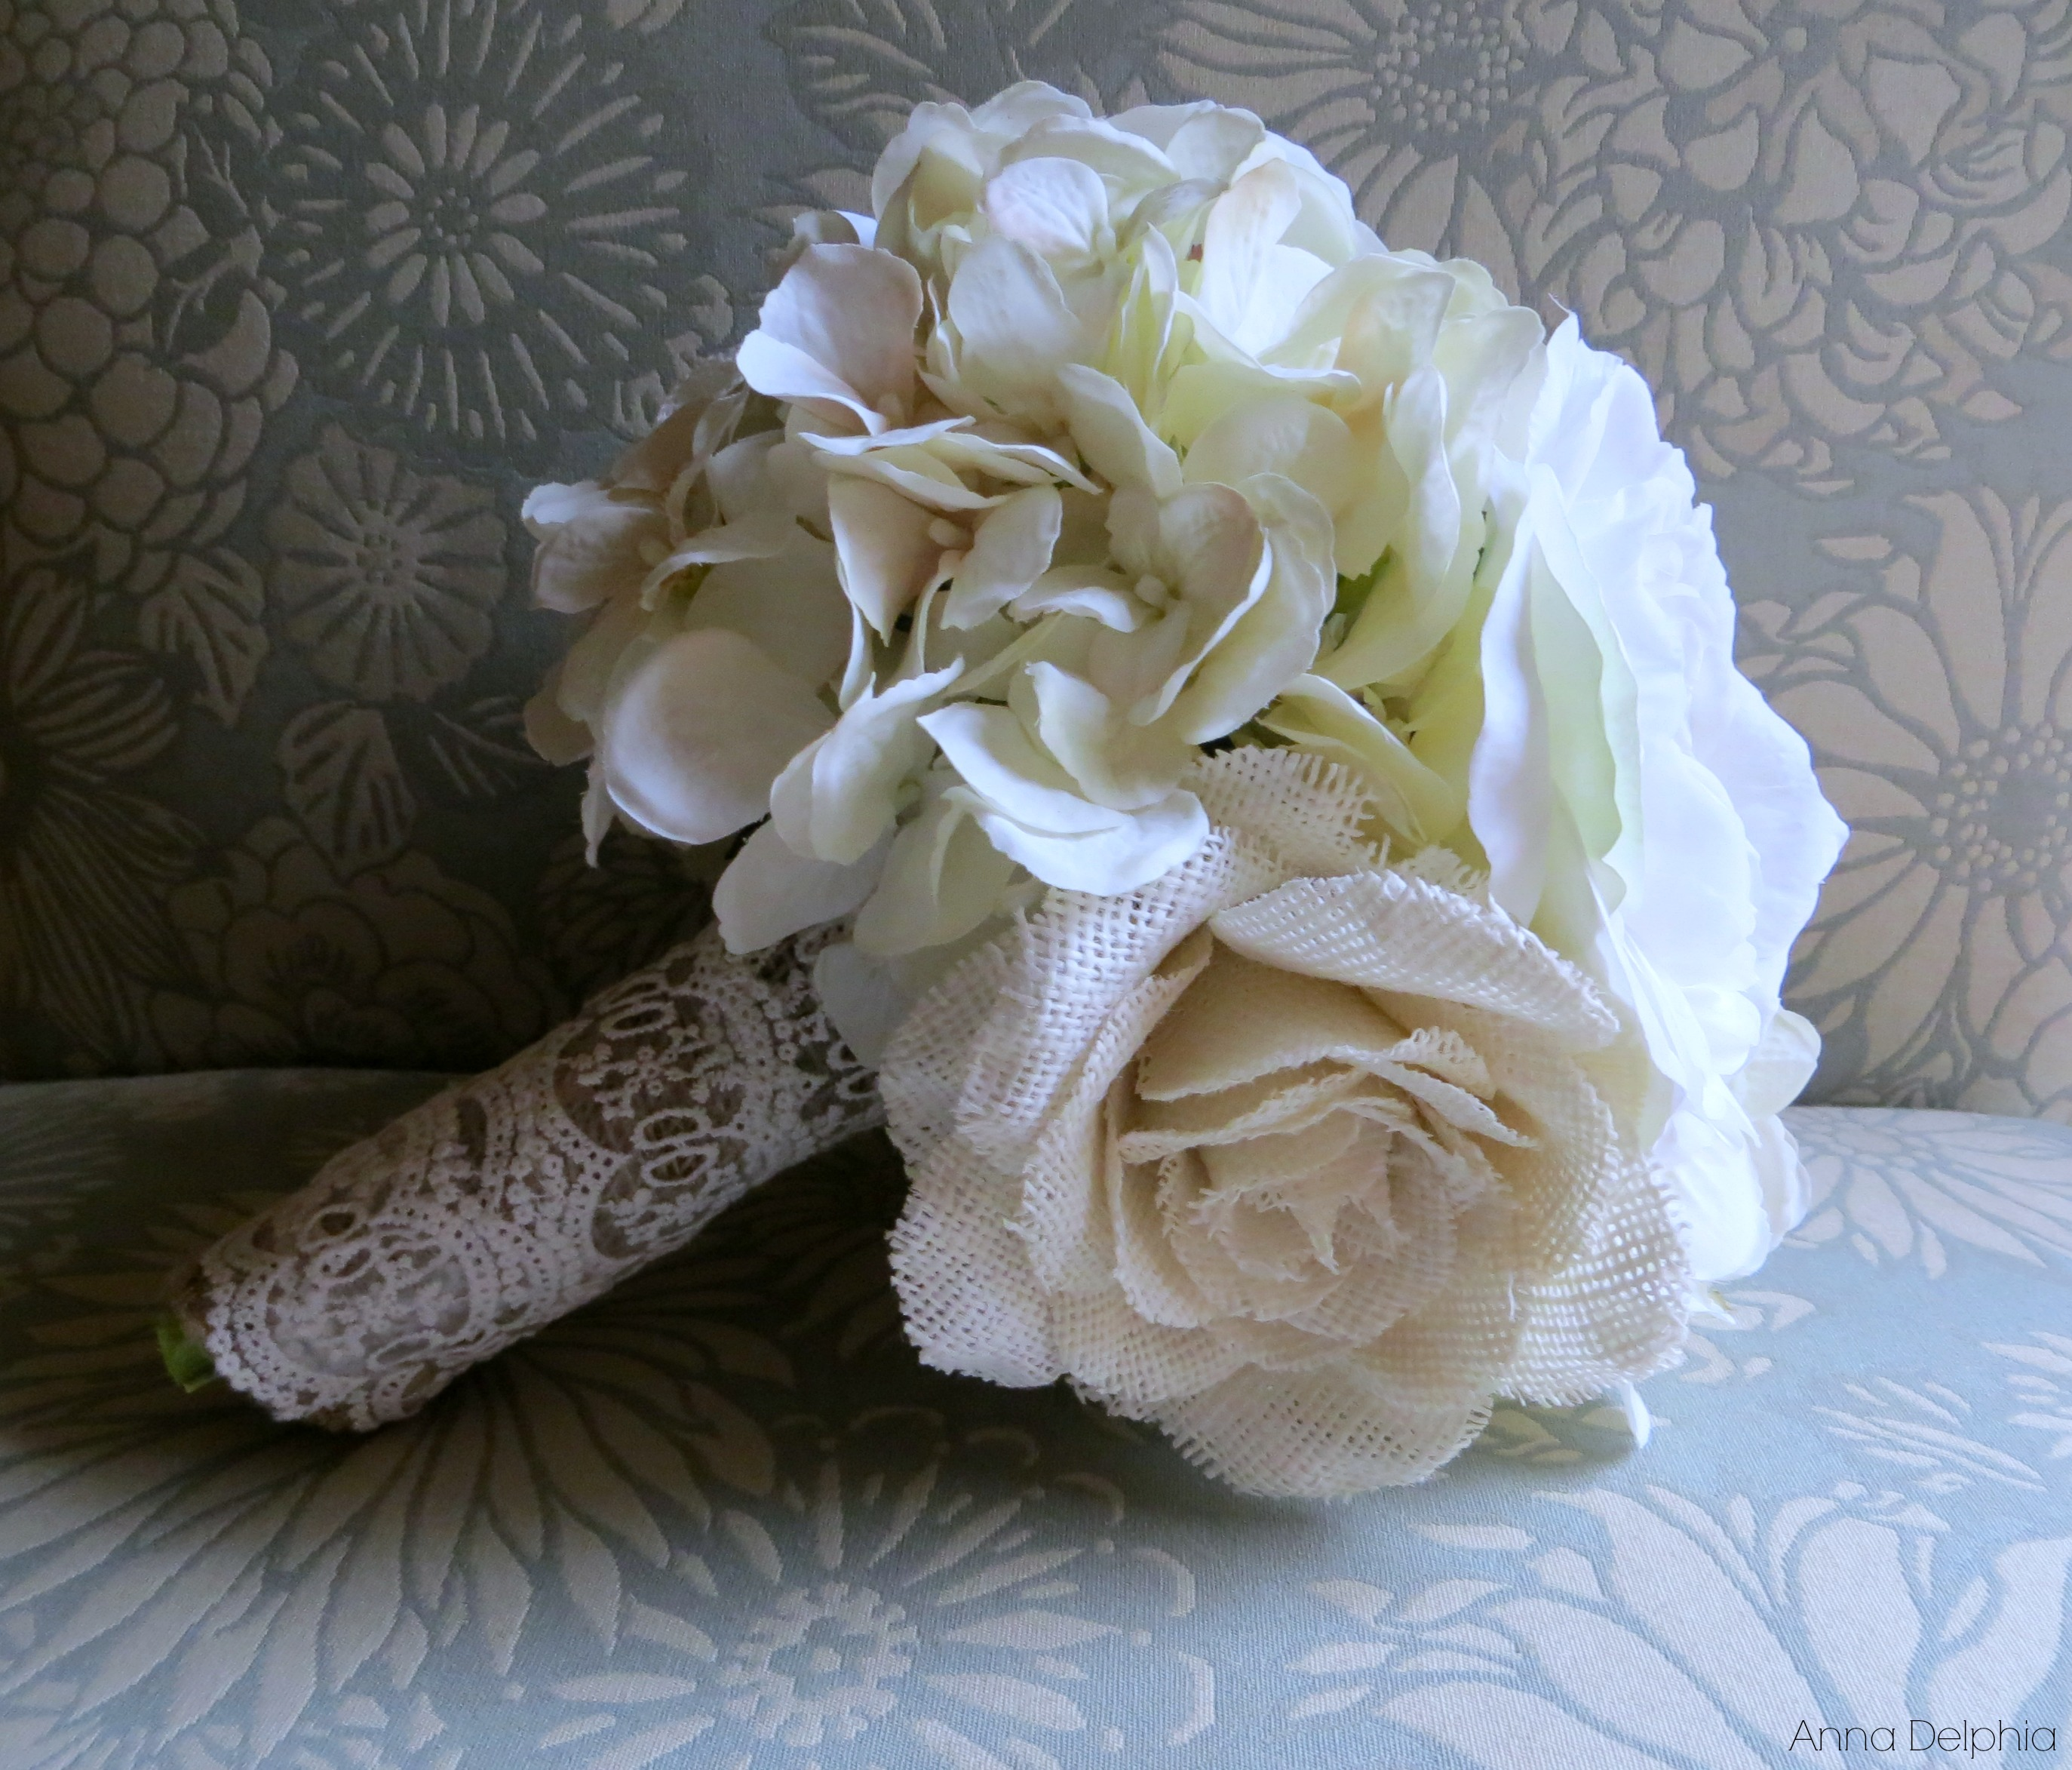 White and cream silk bouquet classic silk white cream roses shabby chic flower arrangement bridal accessory wedding bouquet from the shabby chic white and cream silk bouquet classic silk white cream roses shabby chic flower arrangement izmirmasajfo